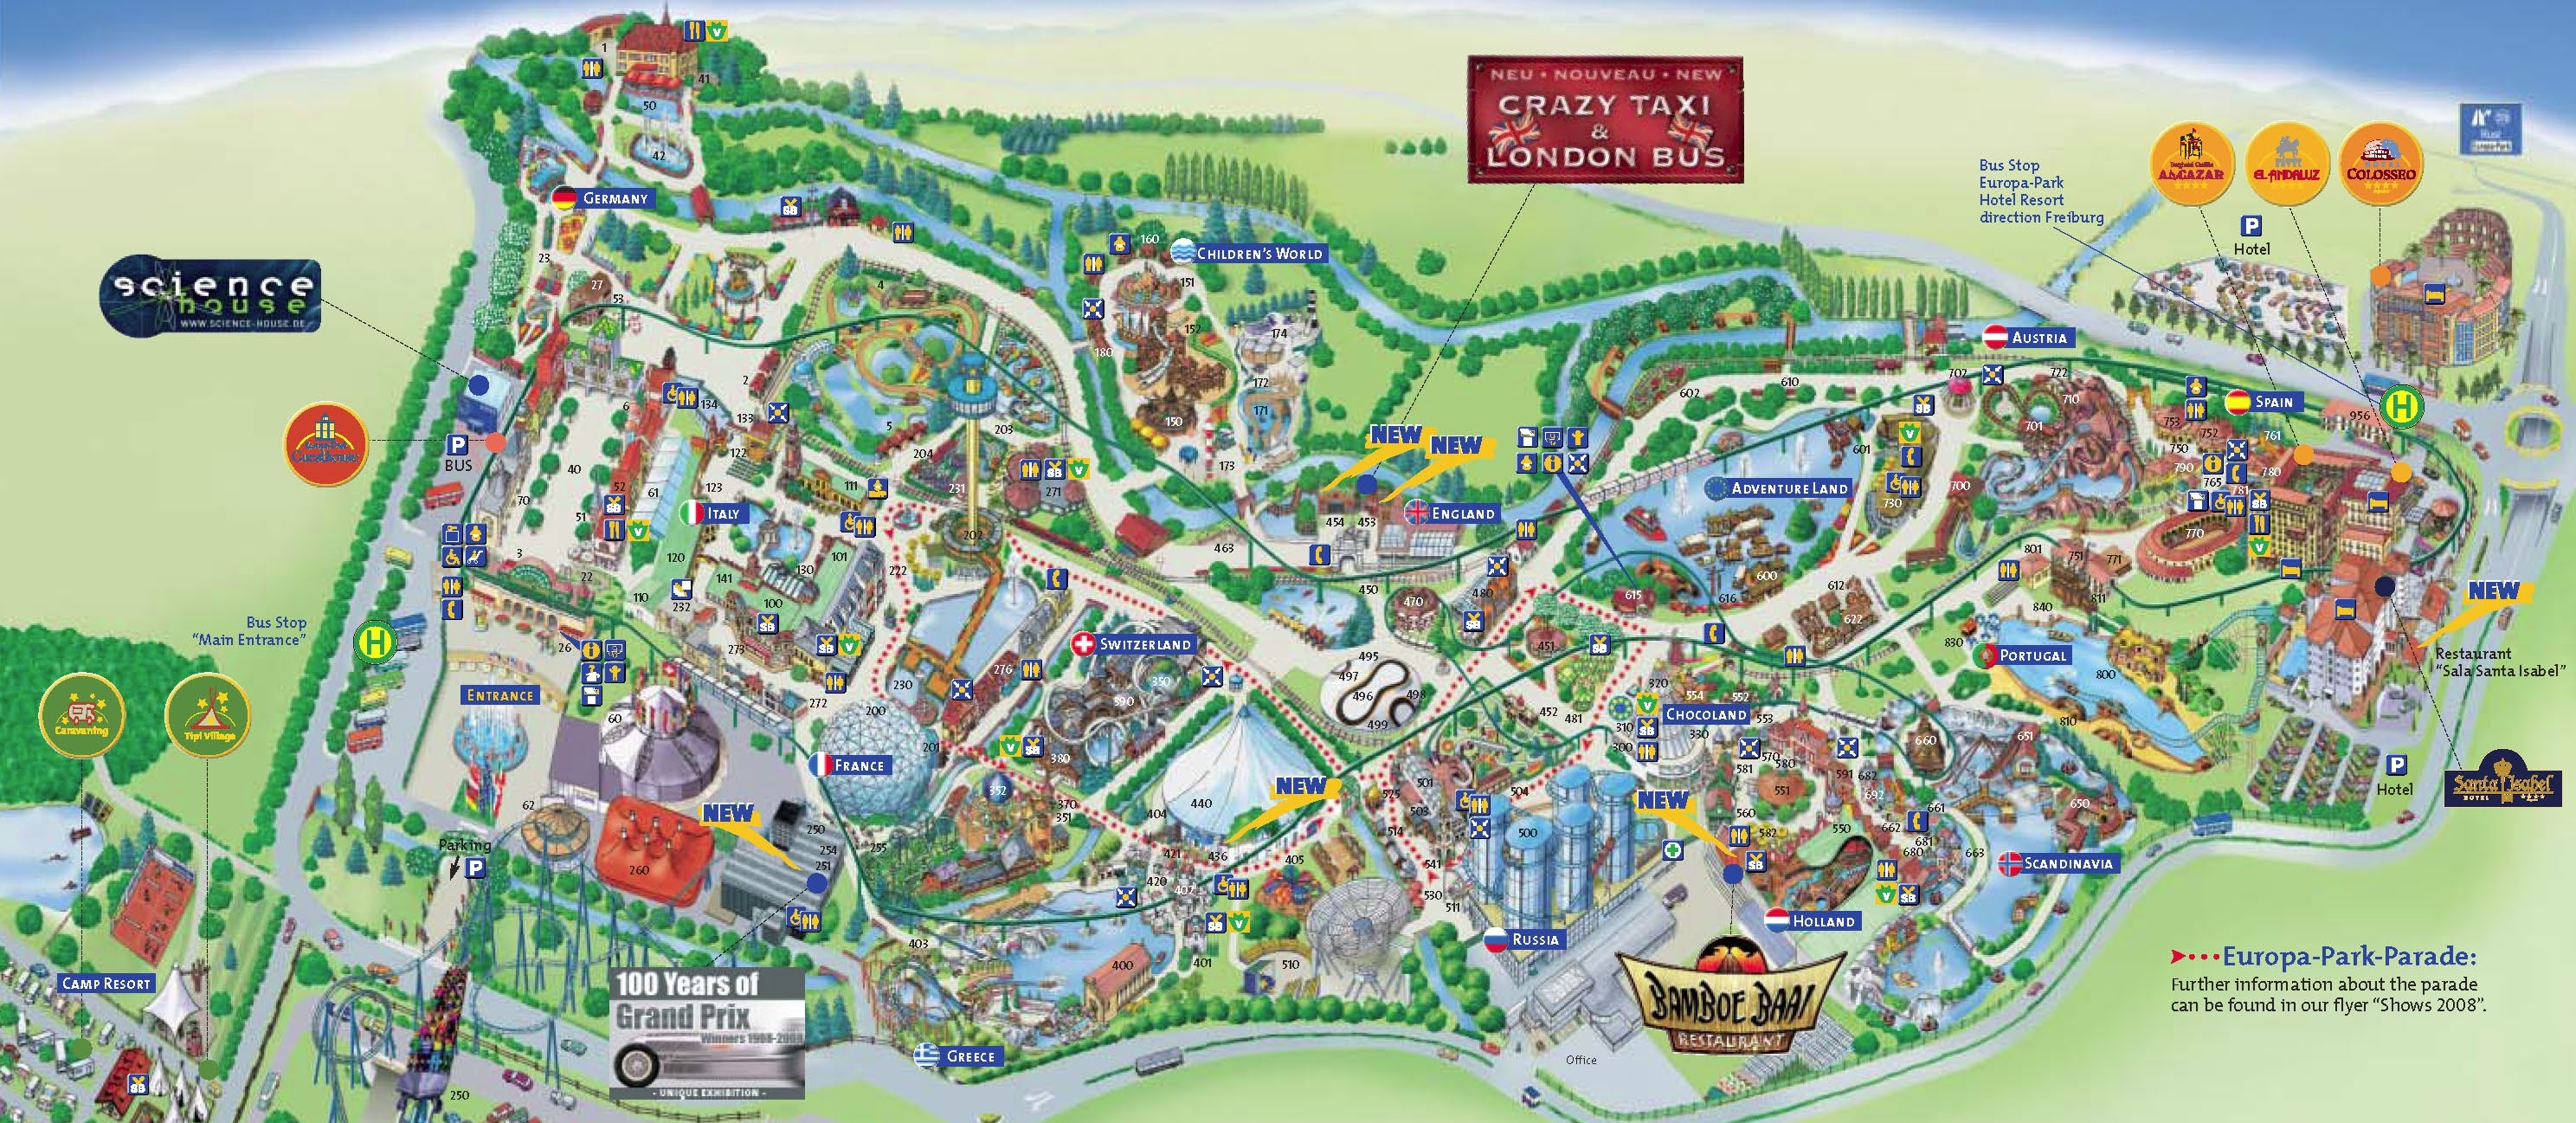 Details - Goofy Dupes pertaining to Europa Park Rust Germany Map